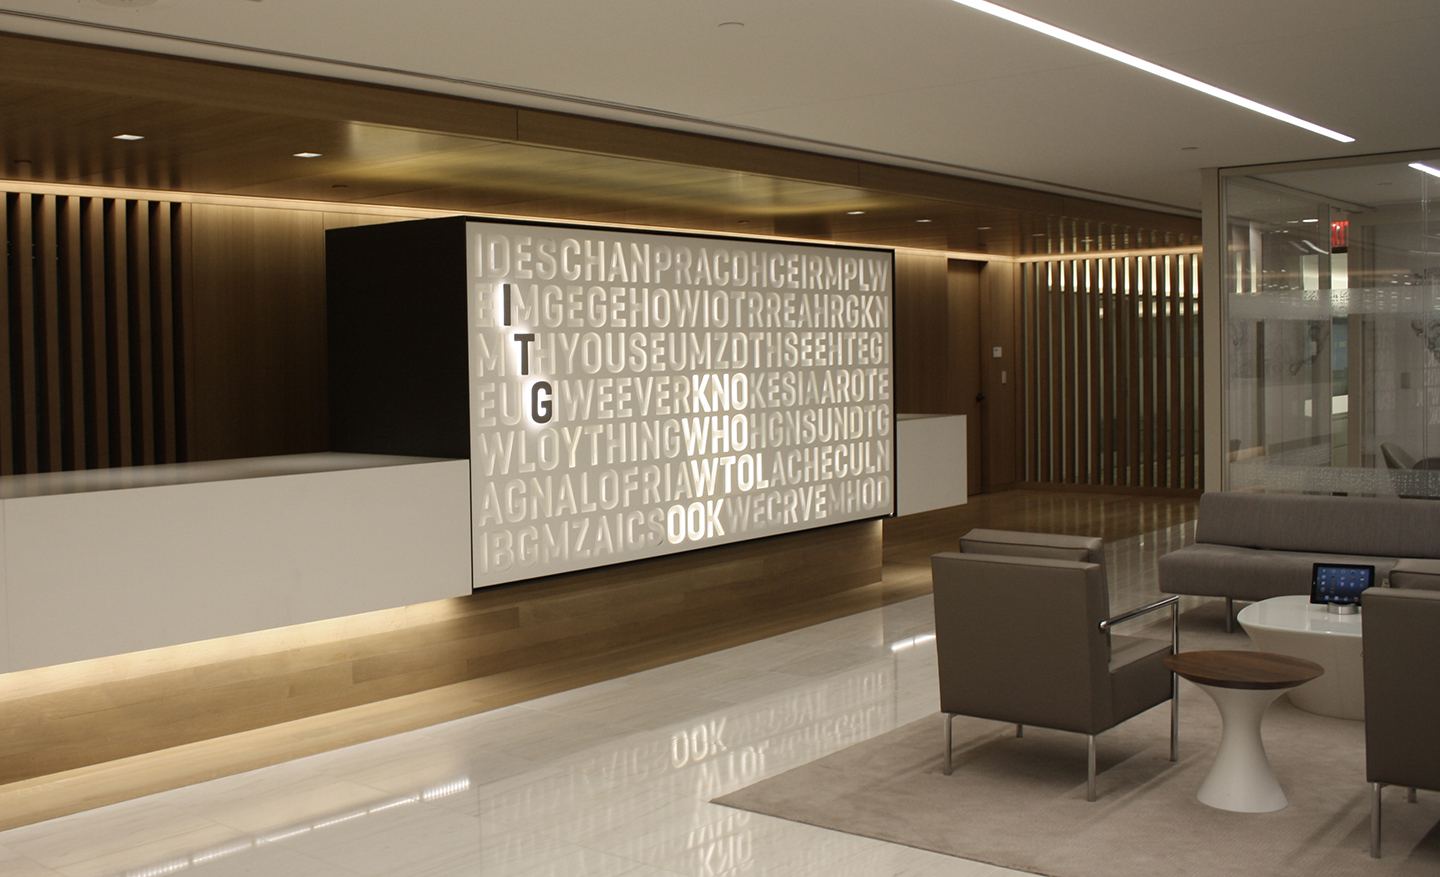 ITG Reception Animated Brand Wall